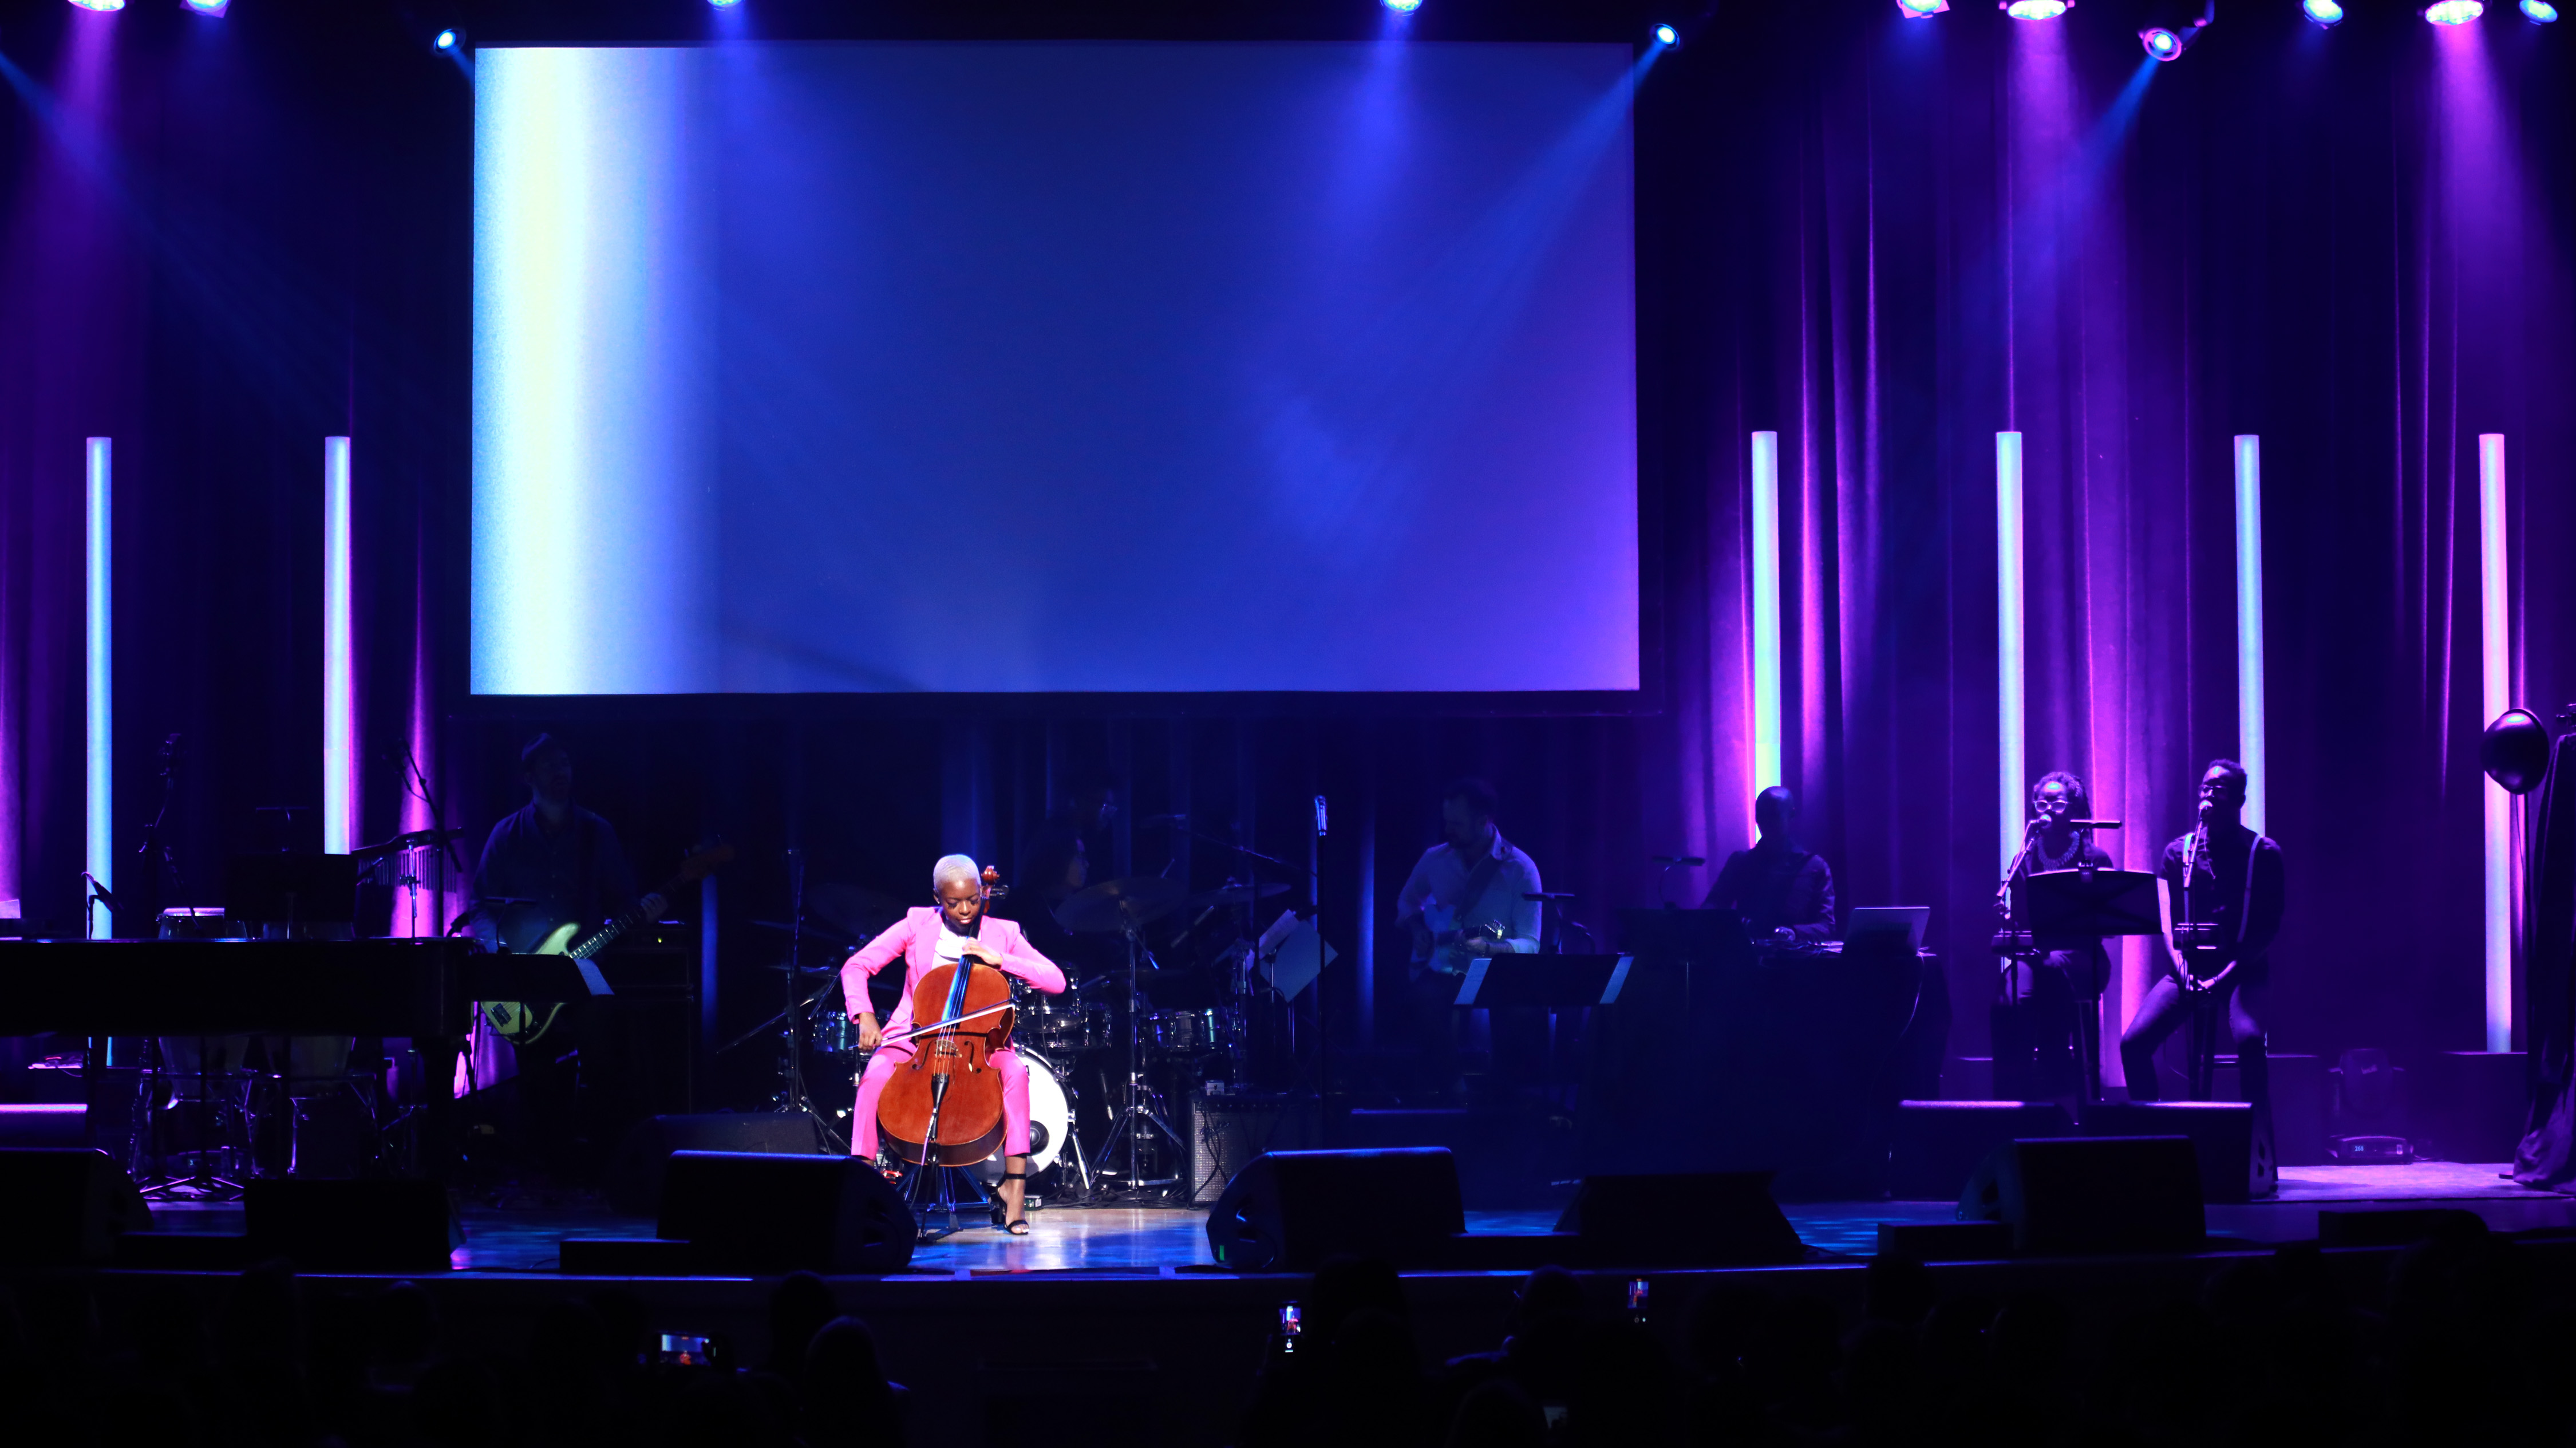 Ifetayo Ali-Landing performs onstage at the Lena Horne Prize Event Honoring Solange Knowles Presented by Salesforce at the Town Hall on February 28, 2020 in New York City.